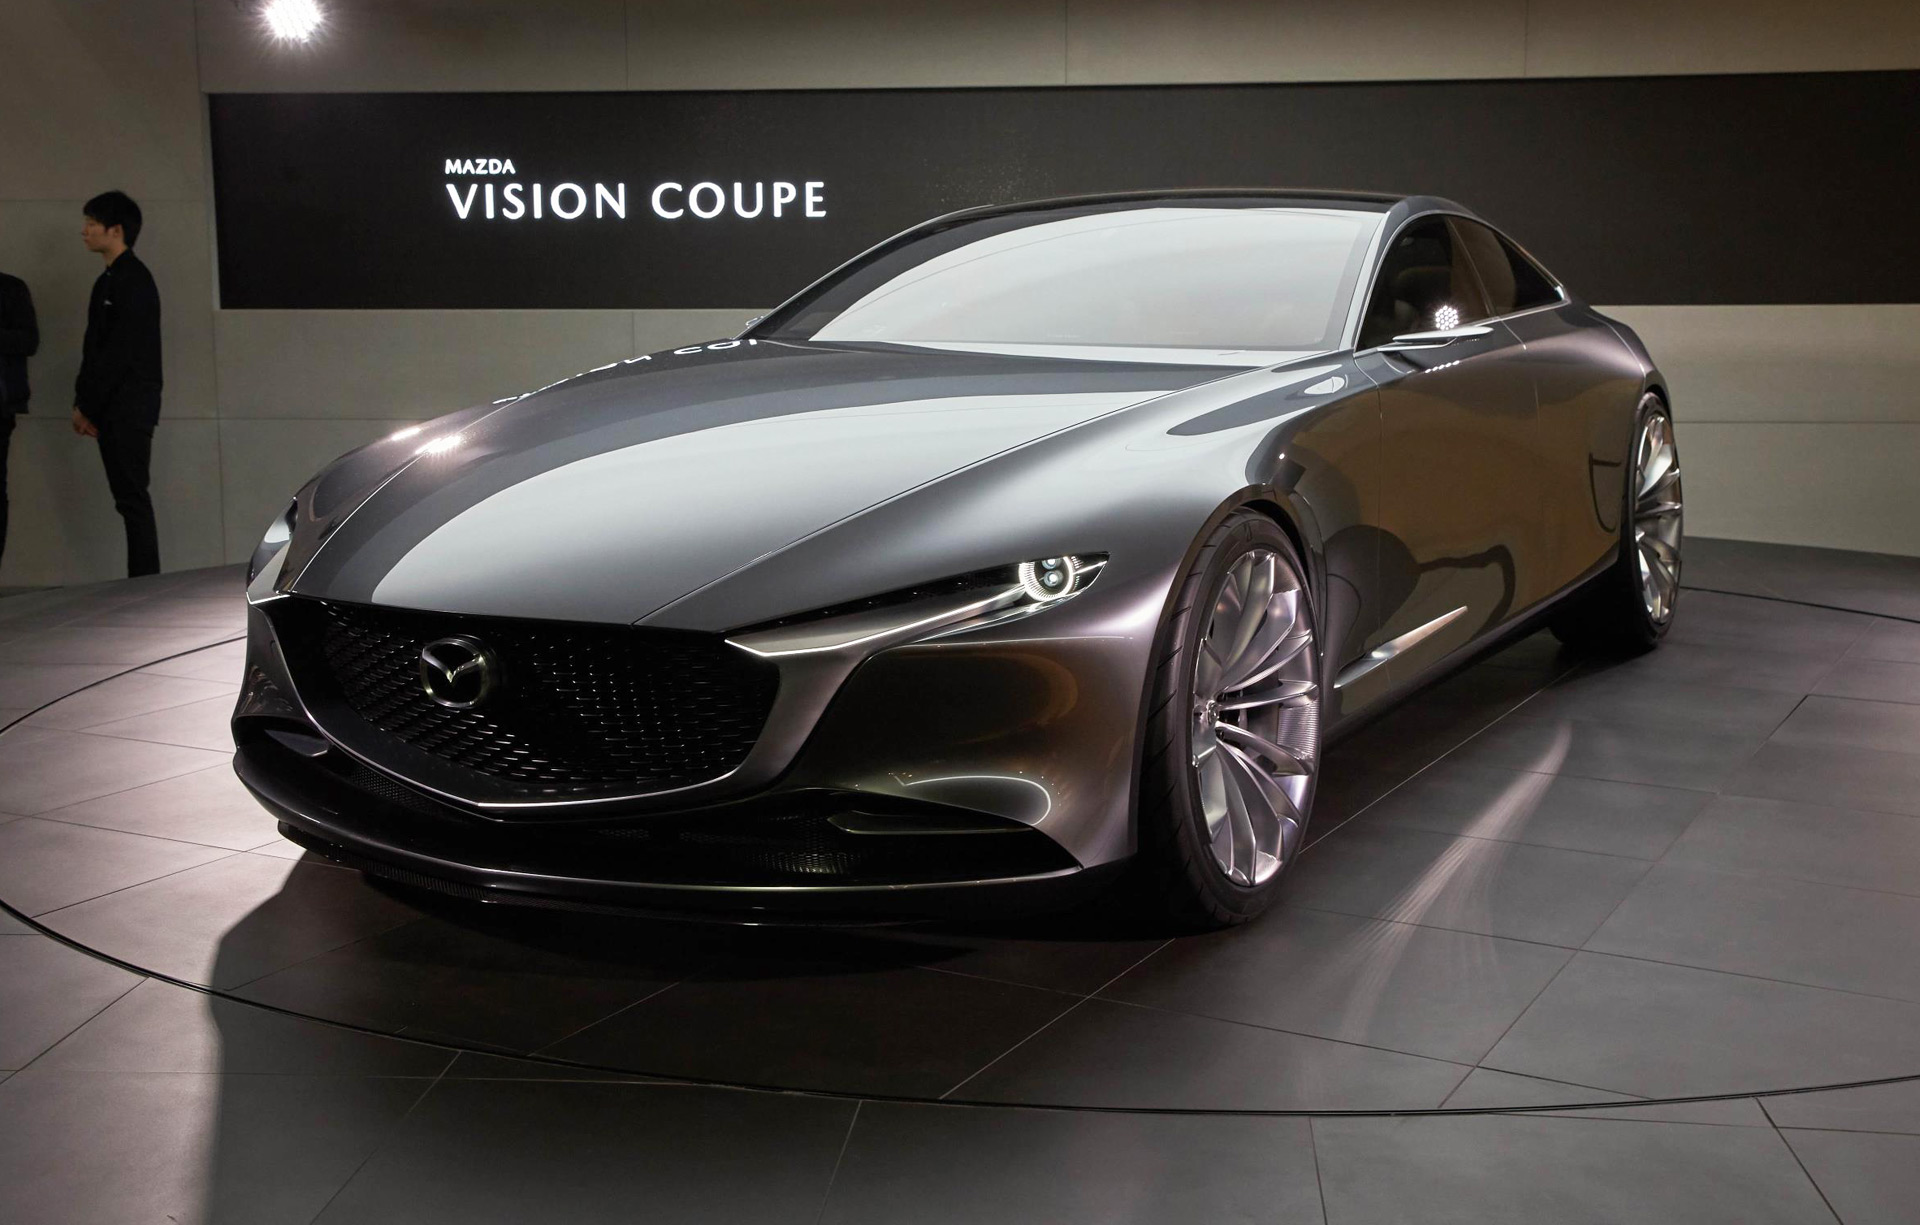 mazda embraces minimalism with vision coupe concept. Black Bedroom Furniture Sets. Home Design Ideas